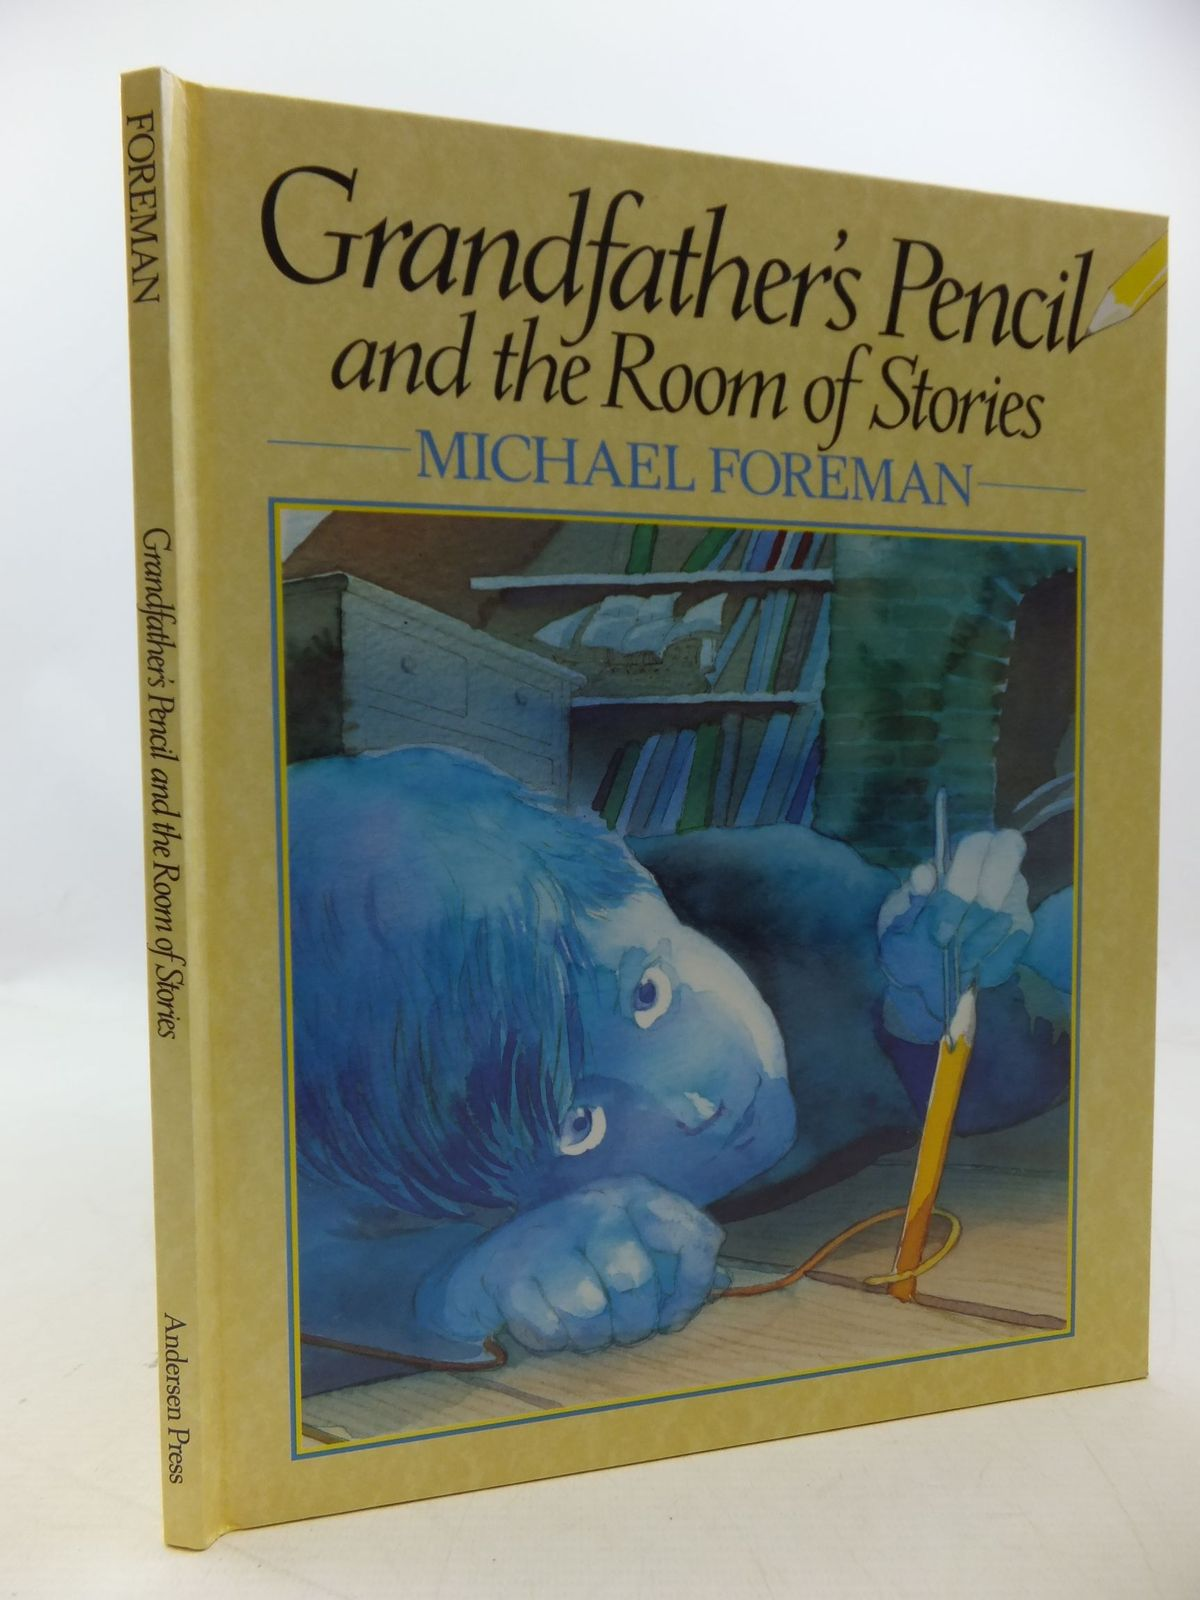 Photo of GRANDFATHER'S PENCIL AND THE ROOM OF STORIES written by Foreman, Michael illustrated by Foreman, Michael published by Andersen Press Ltd. (STOCK CODE: 1710212)  for sale by Stella & Rose's Books